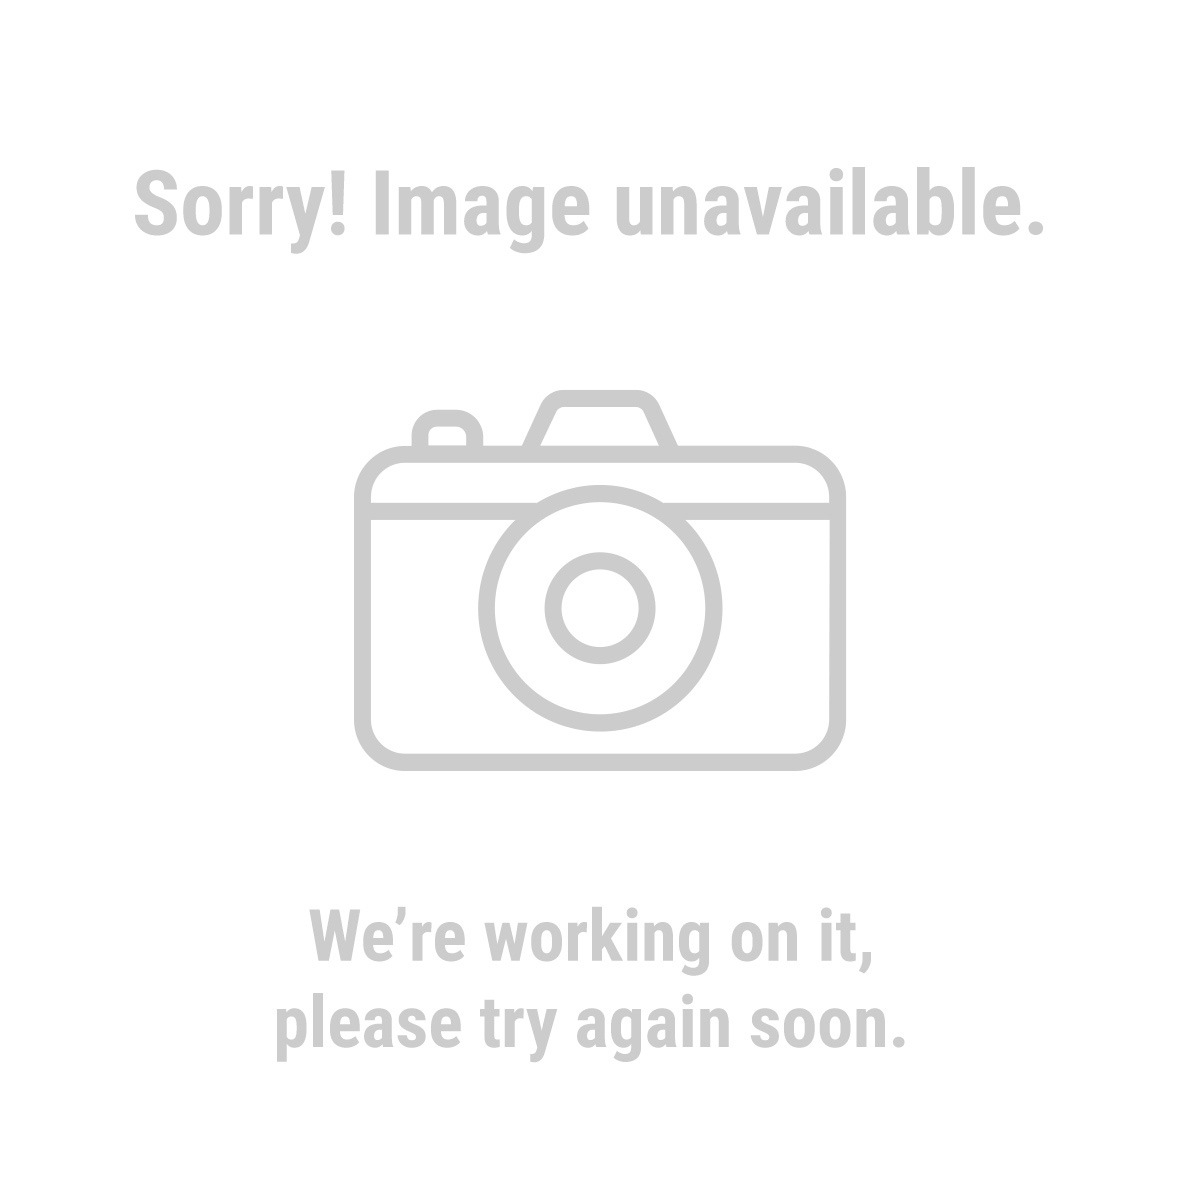 Haul-Master 97184 Replacement Cart Tire and Wheel